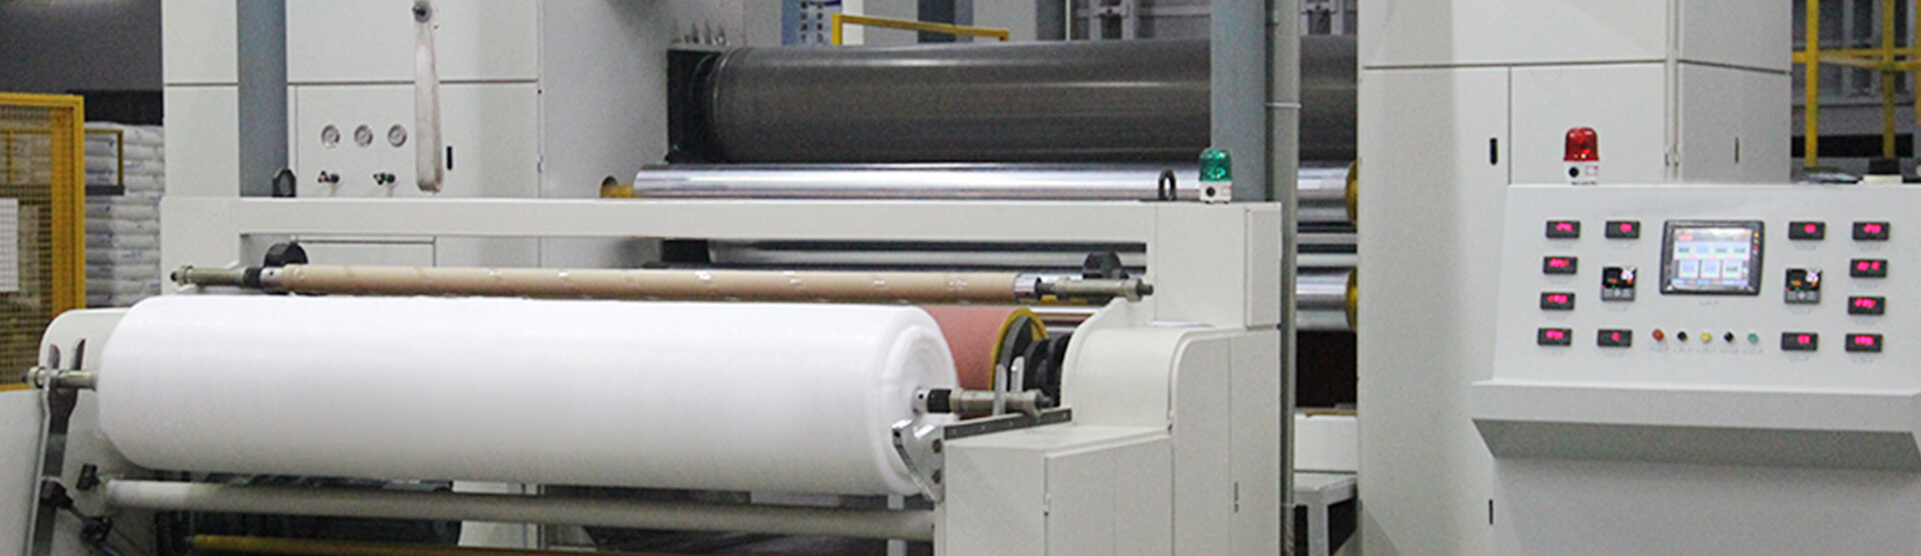 Nonwoven Fabric Production System